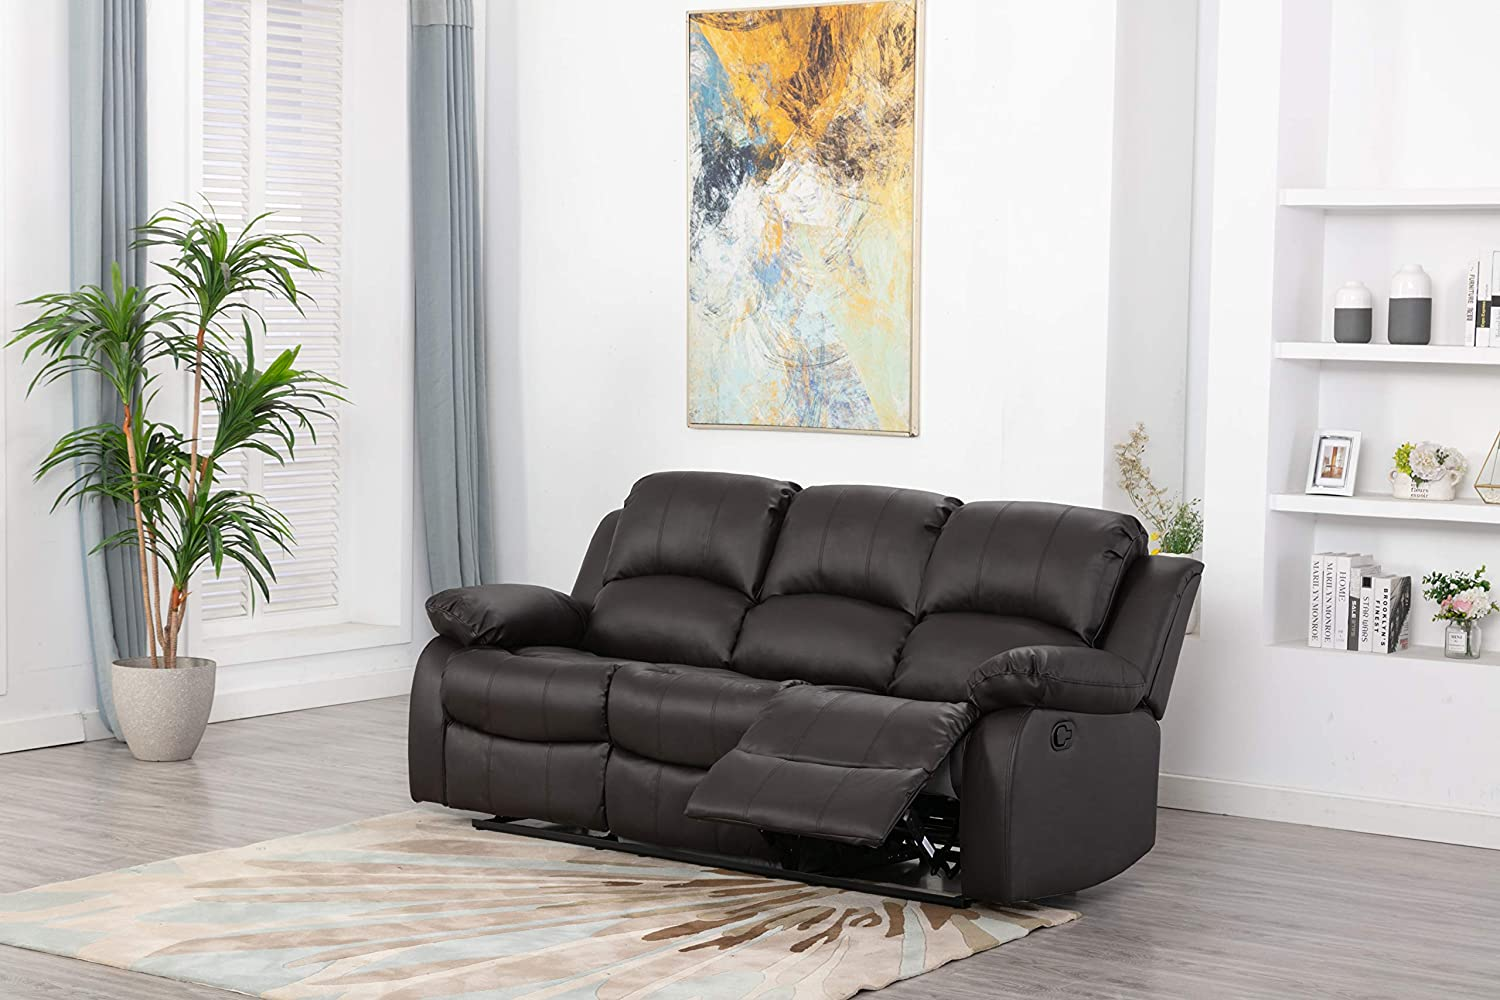 Athon furniture Brown 3 seater, Double Recliner Sofa, Quality Premium Leather settee, Couche suite